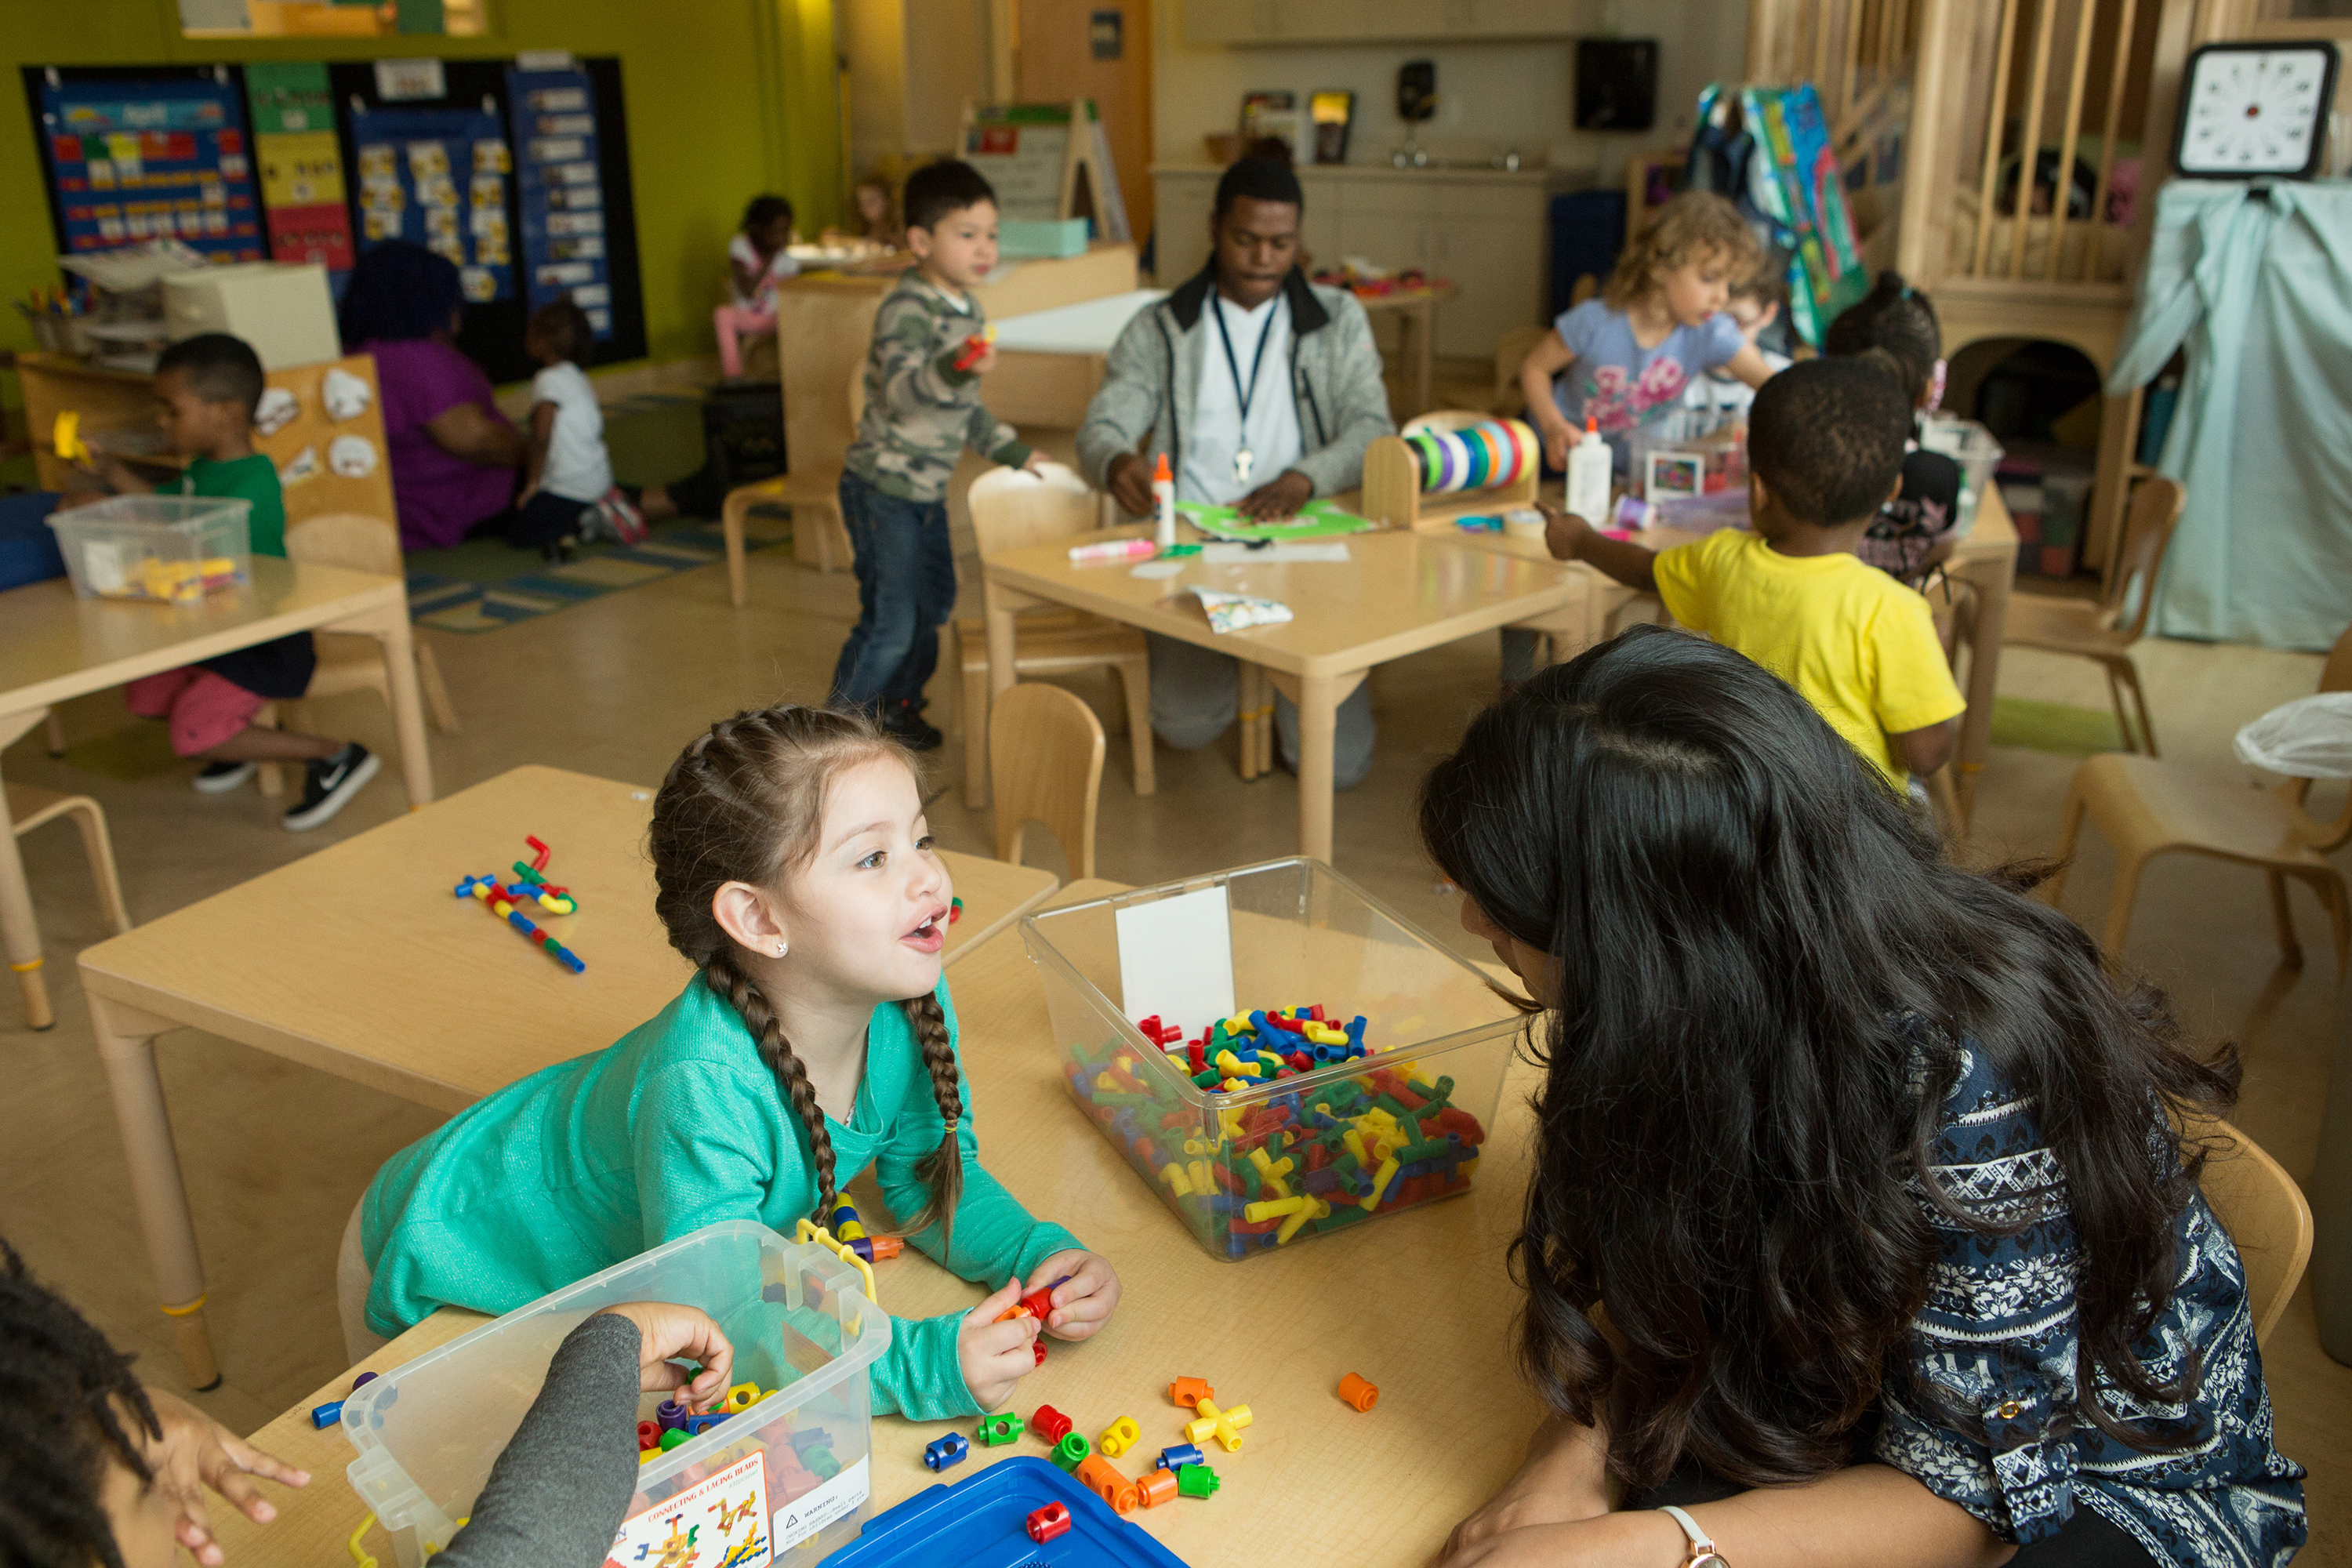 Young children and teachers play with building sets in a classroom.